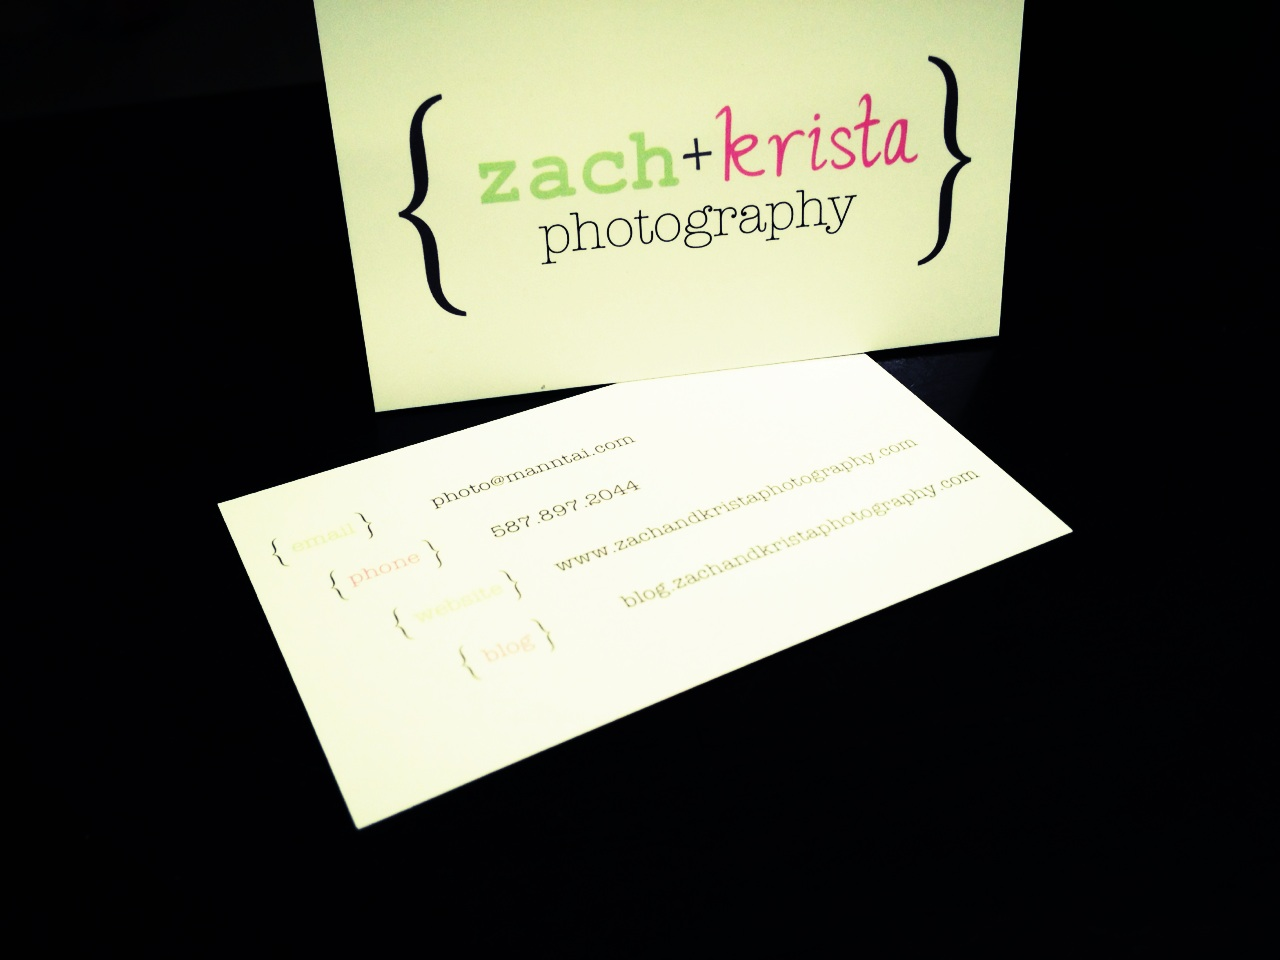 New business cards! Thanks @jukeboxprint! They look great!